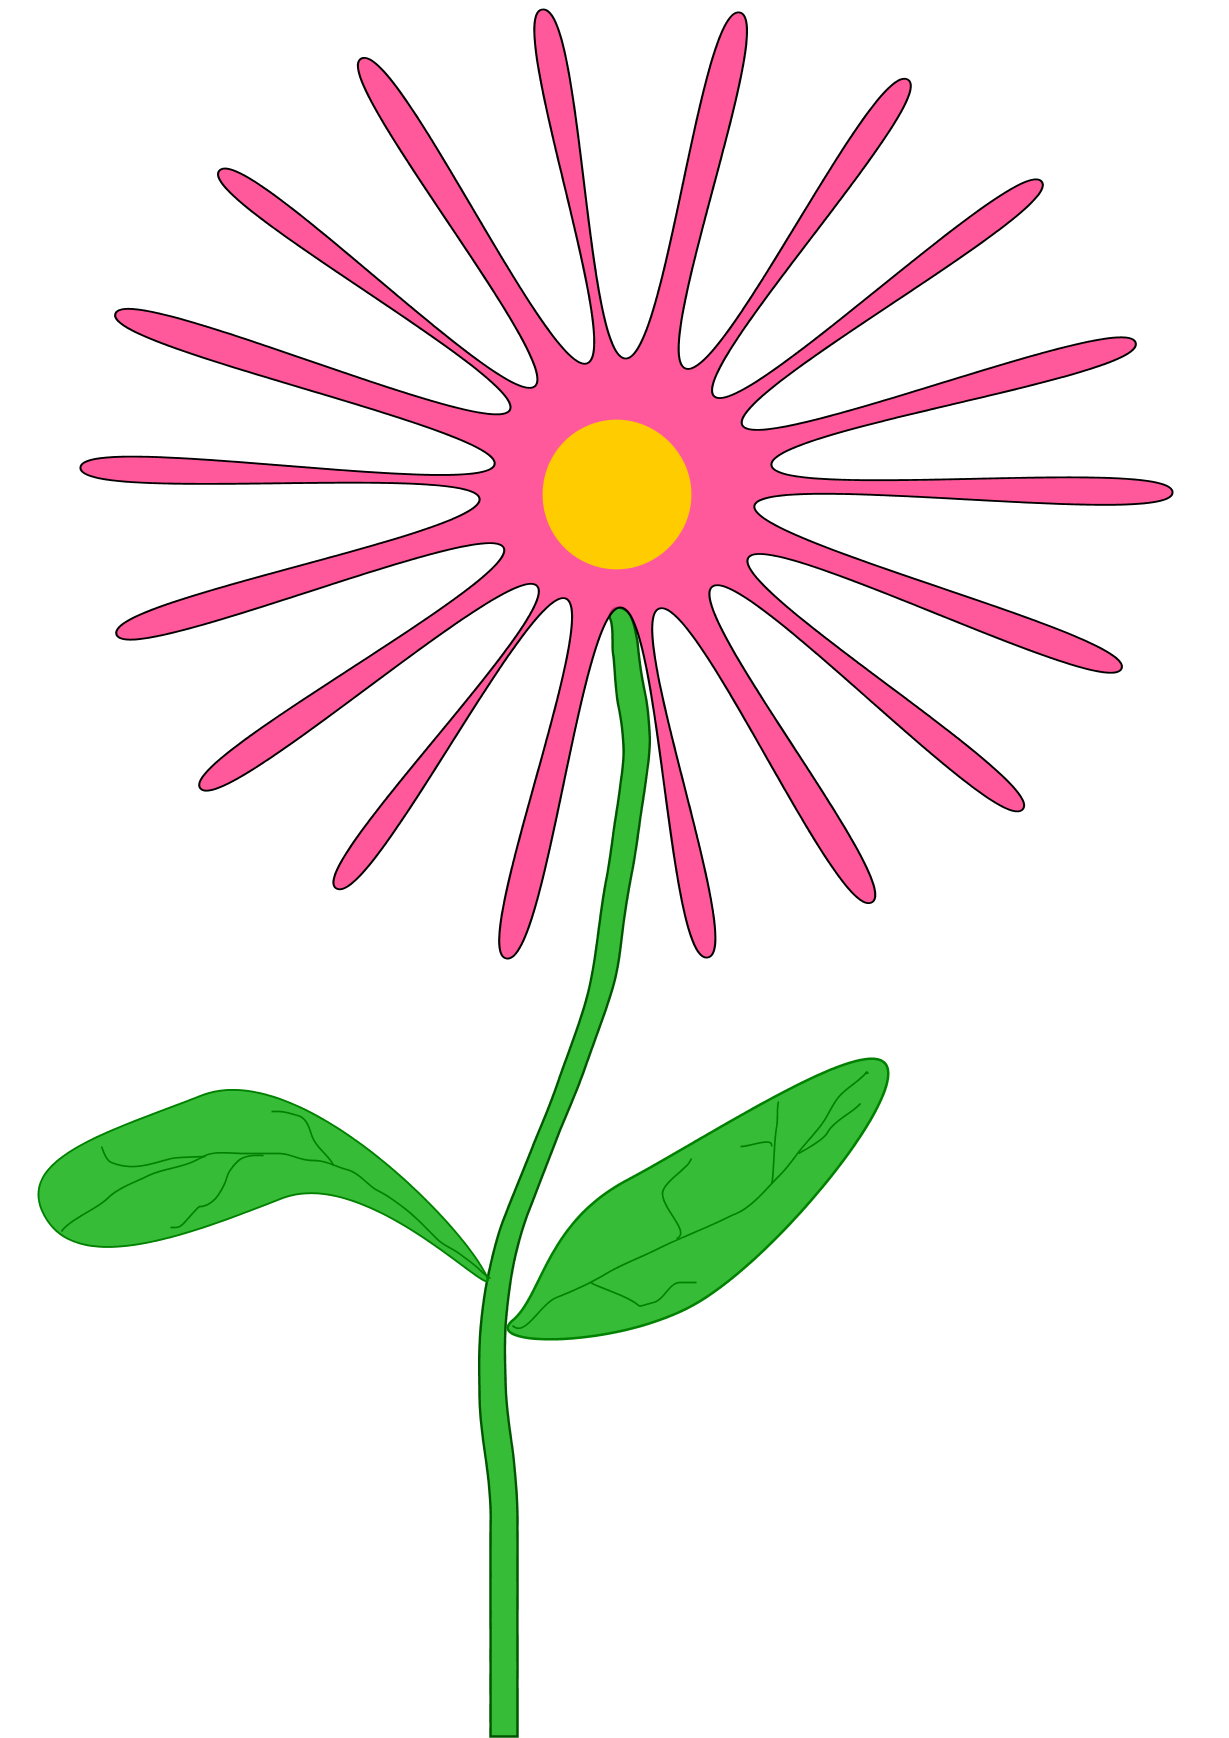 April flower clipart clipart free library April Flowers Clipart - Clipart Kid clipart free library